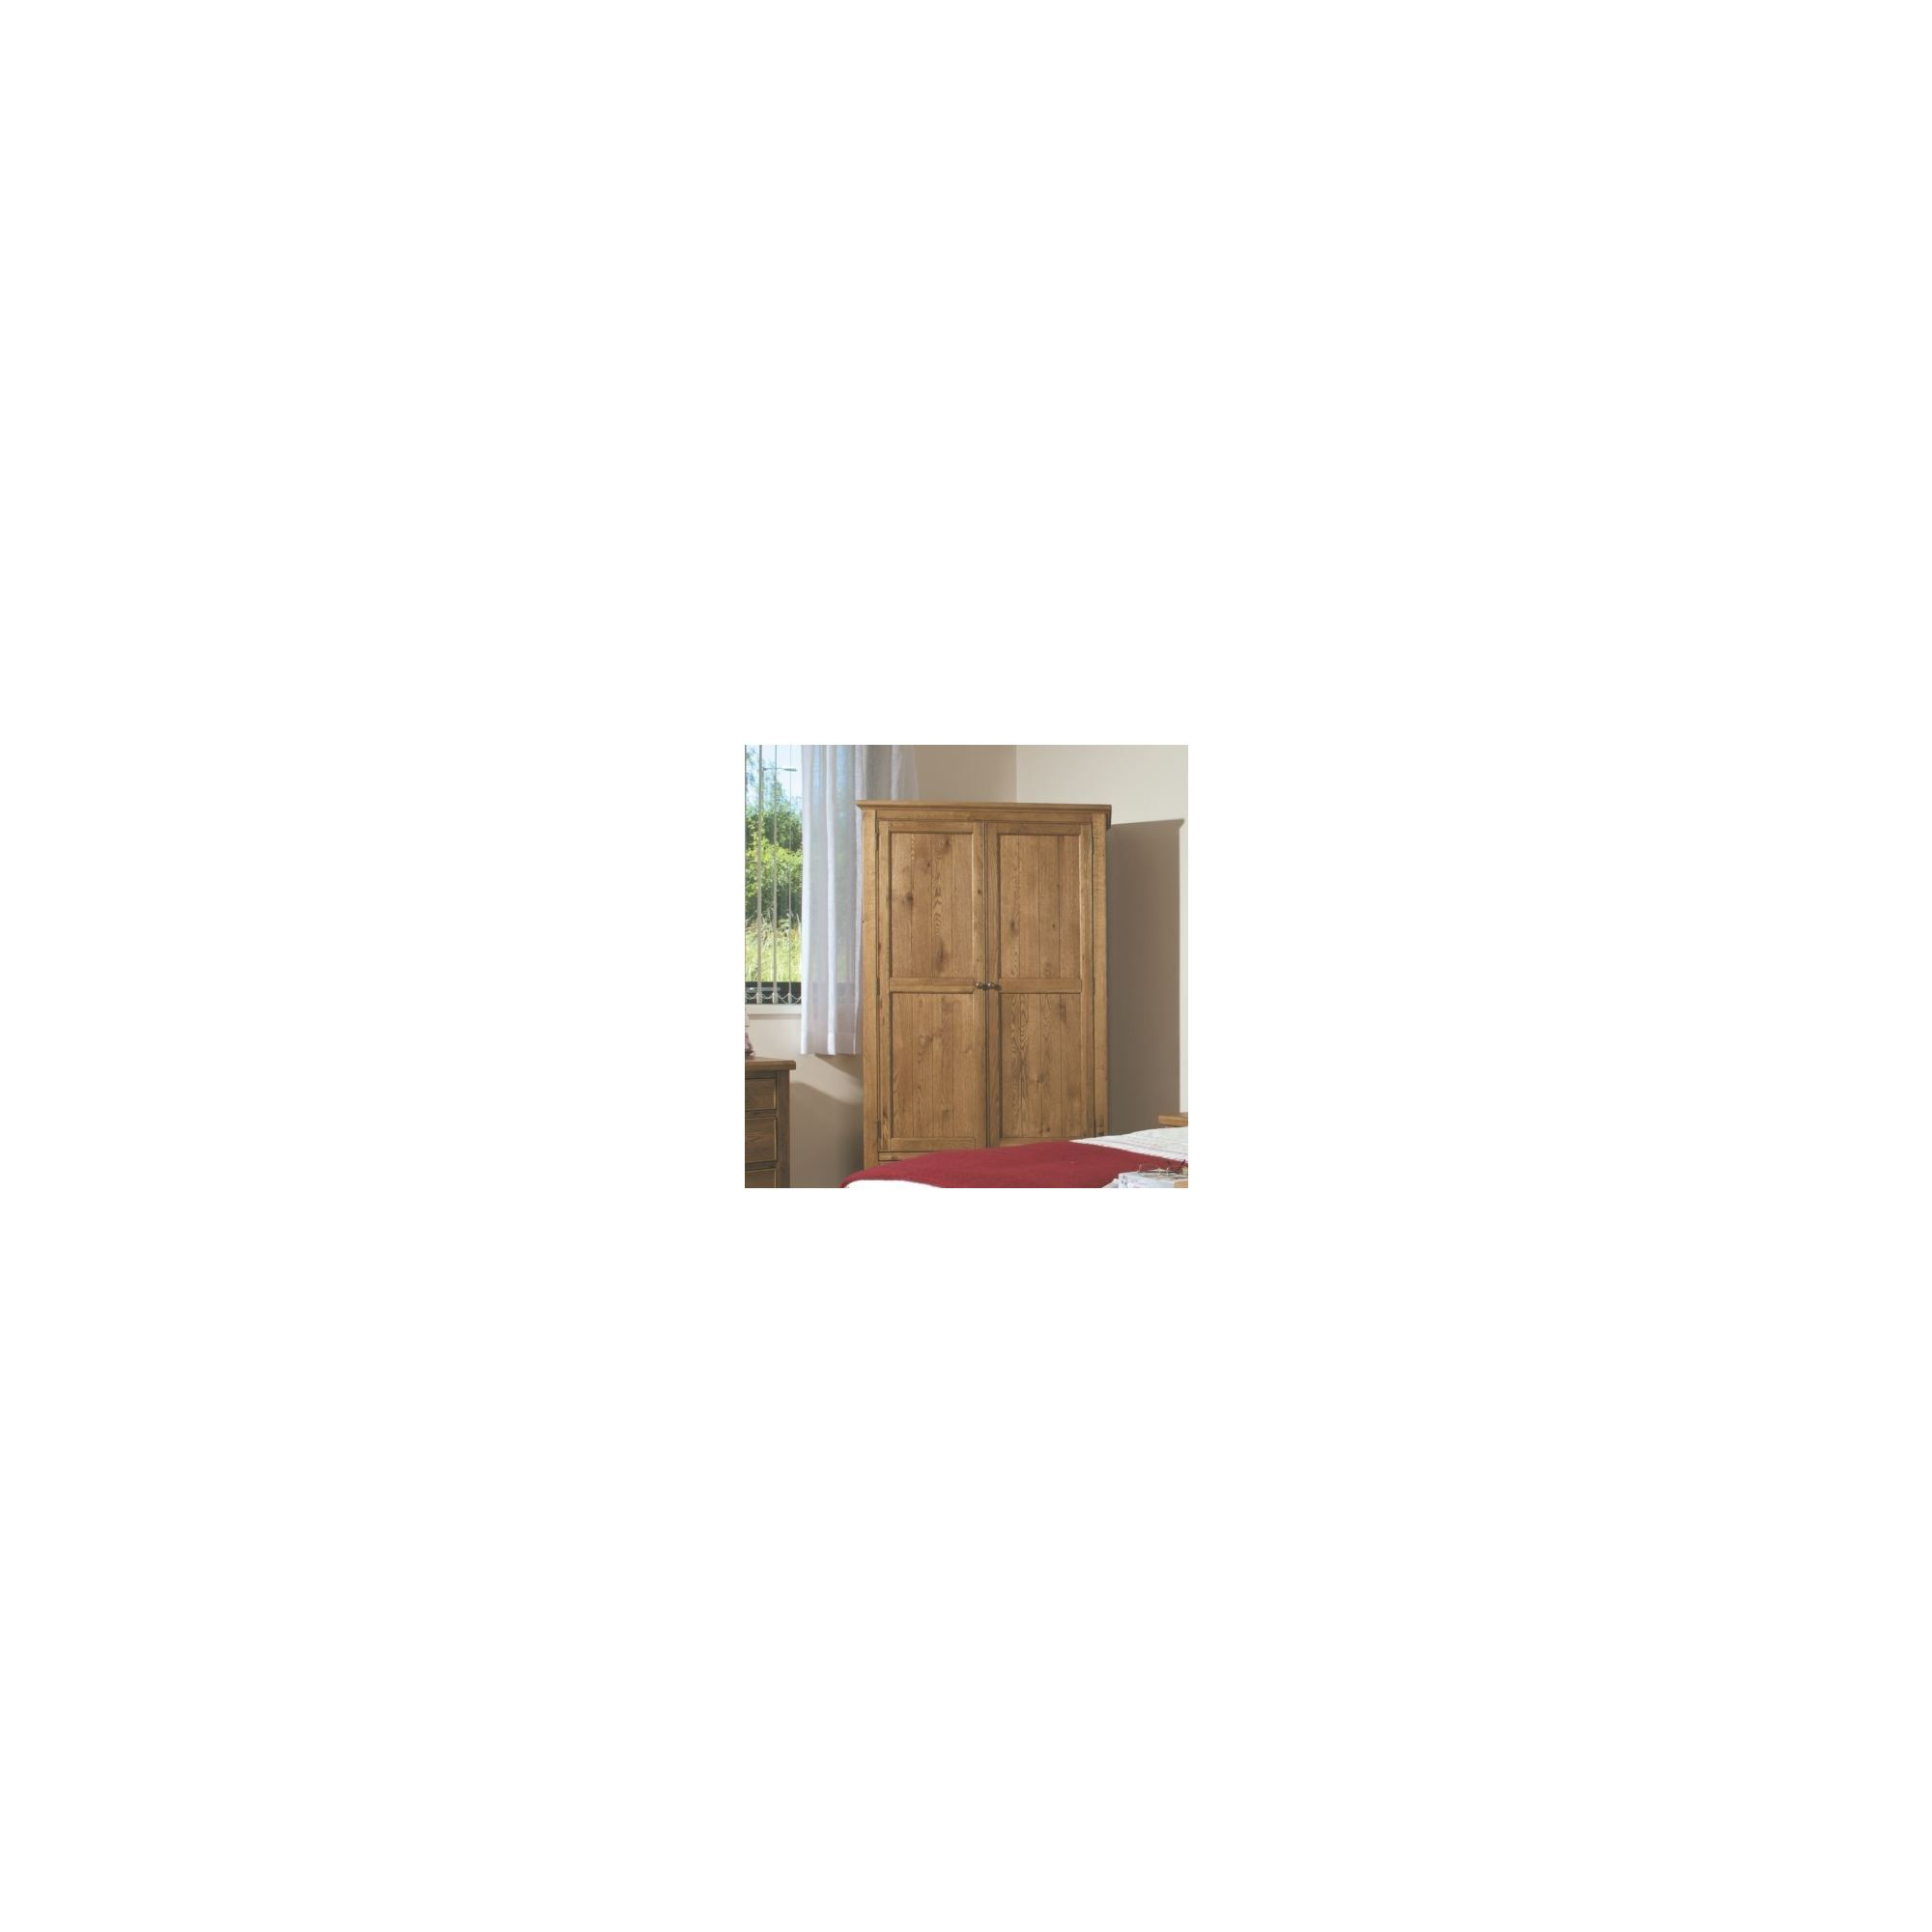 Kelburn Furniture Marino Rustic Oak Gents Wardrobe at Tesco Direct